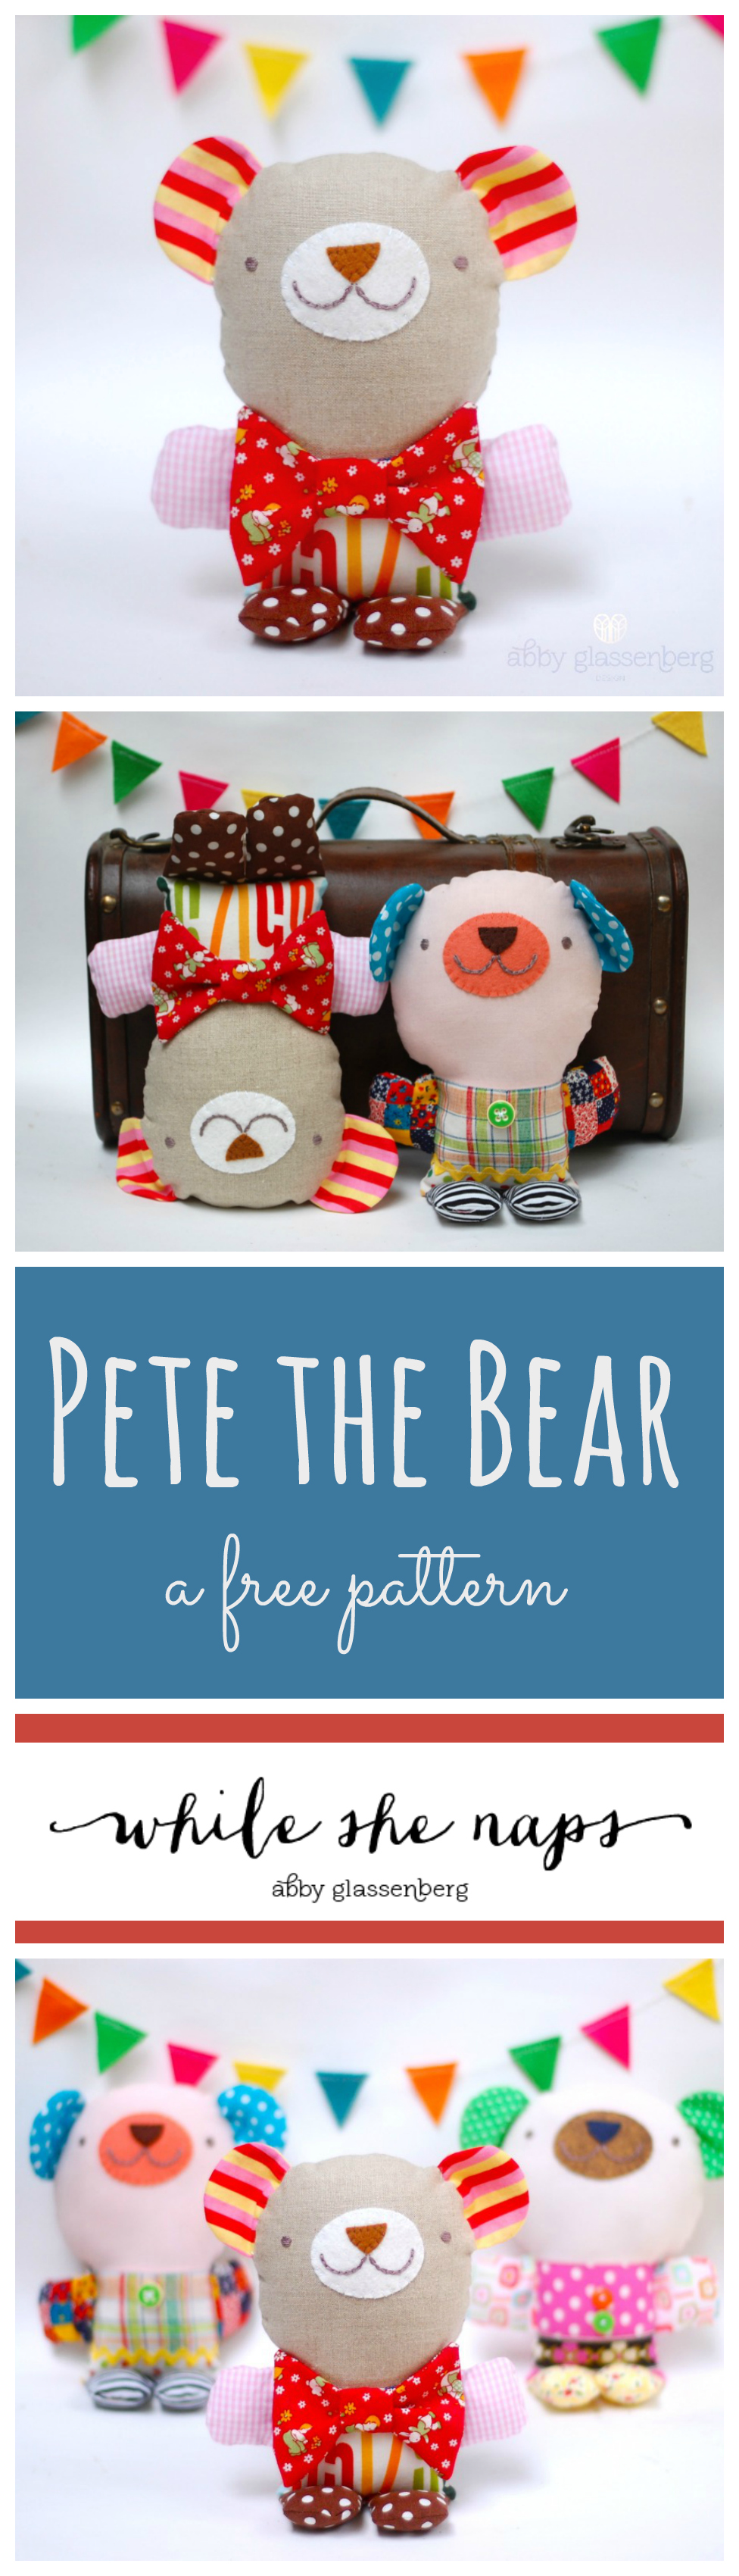 A free pattern for Pete the Bear.